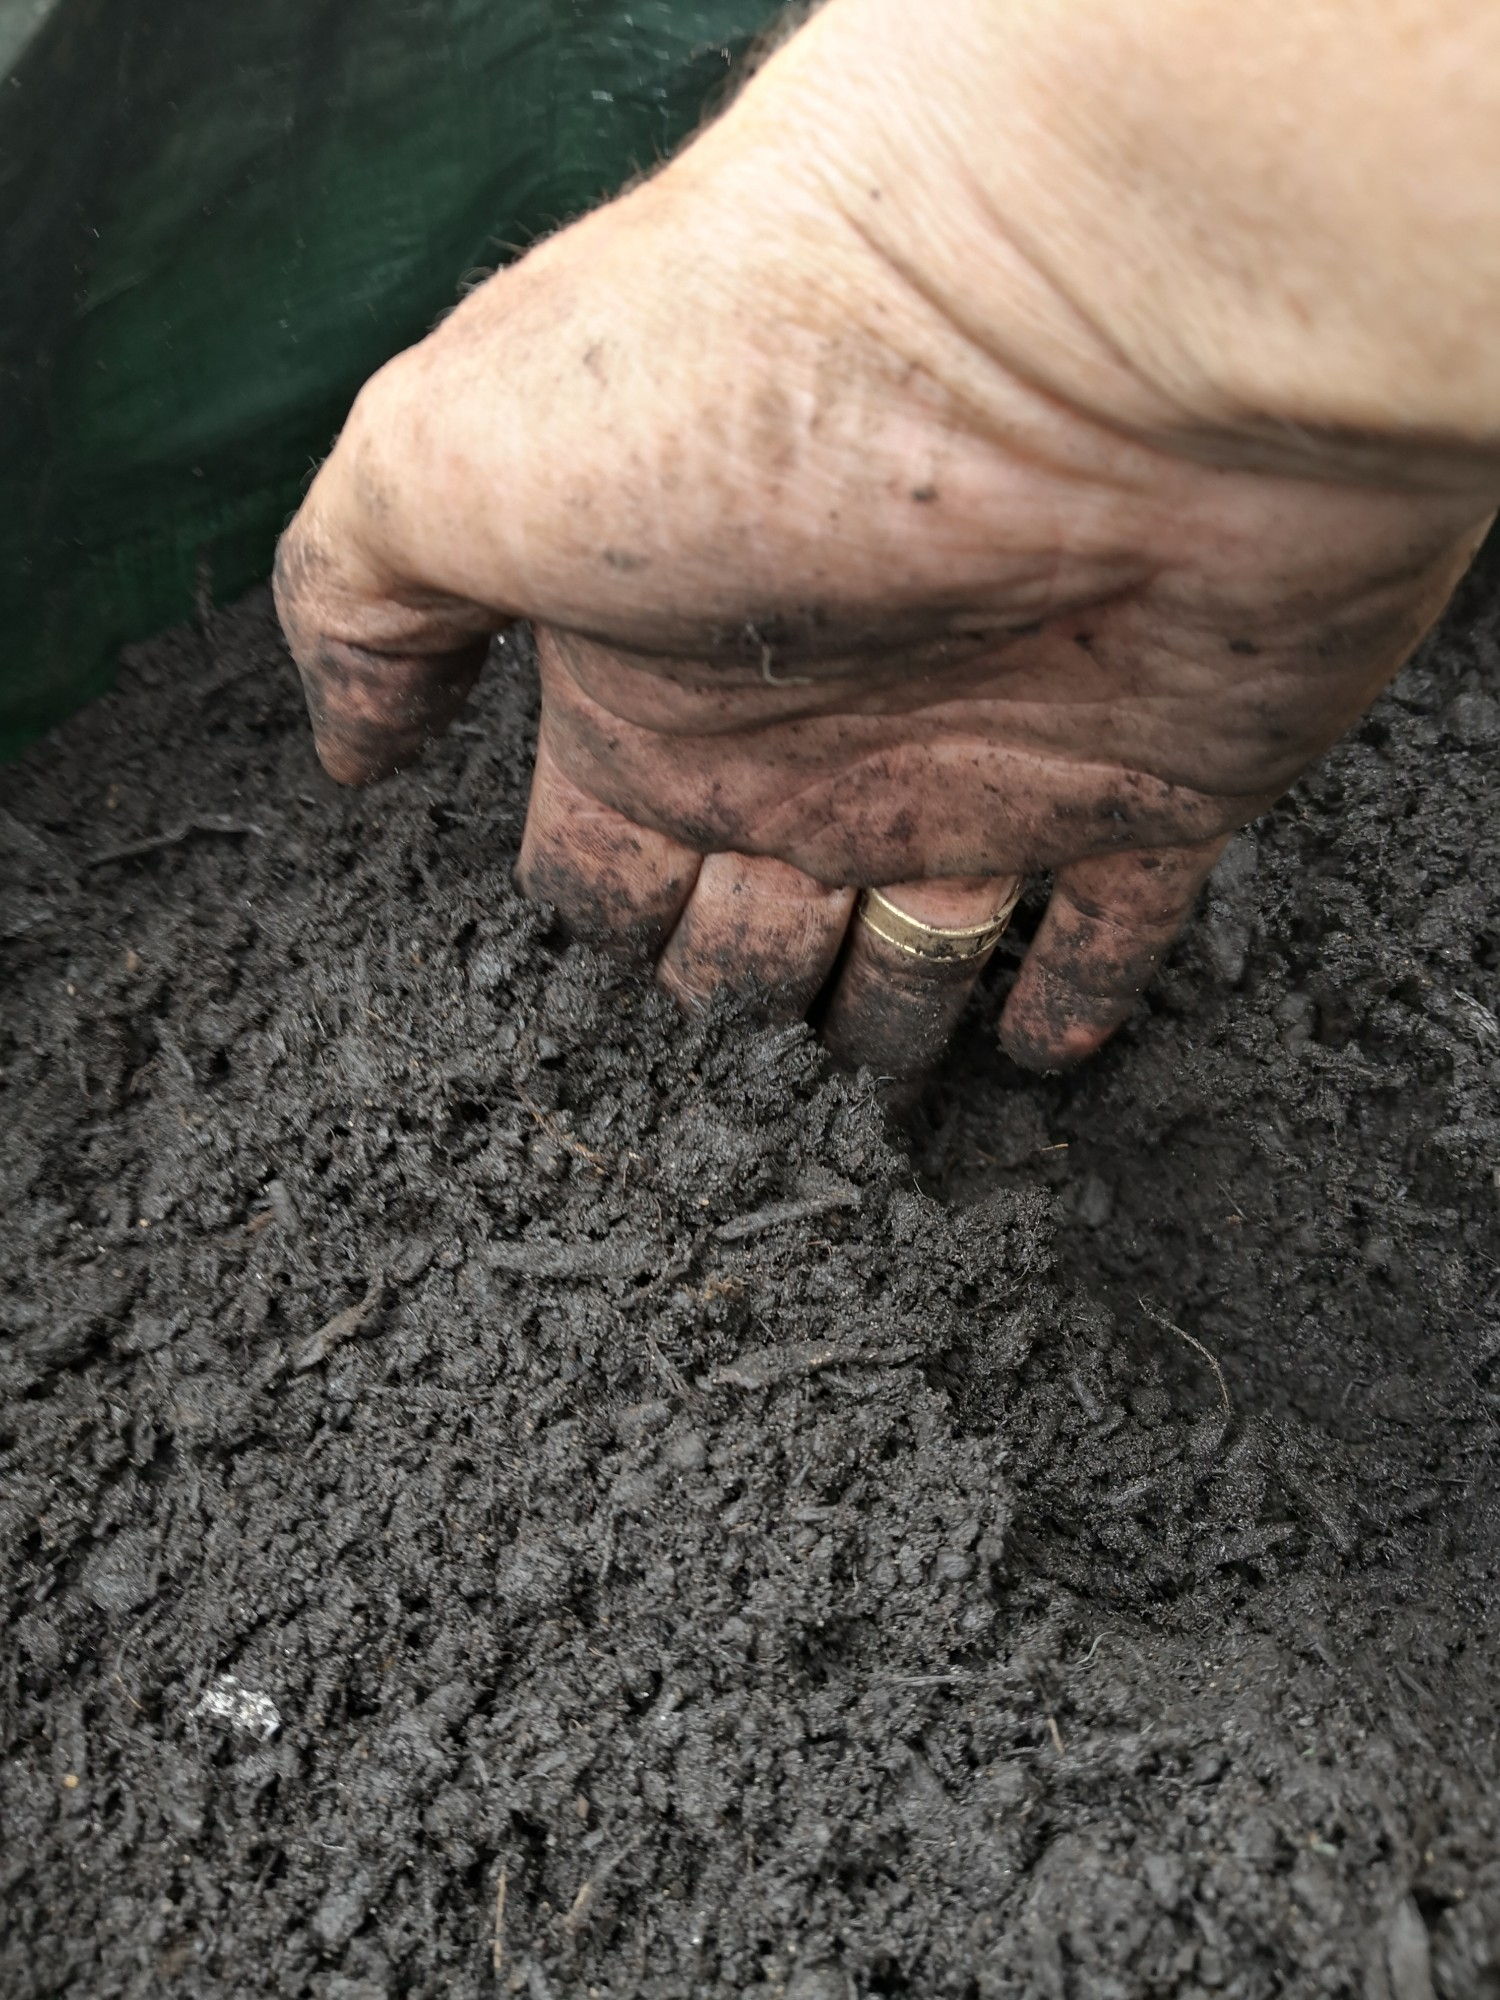 Cover the potatoes with 5-10 cm of compost.